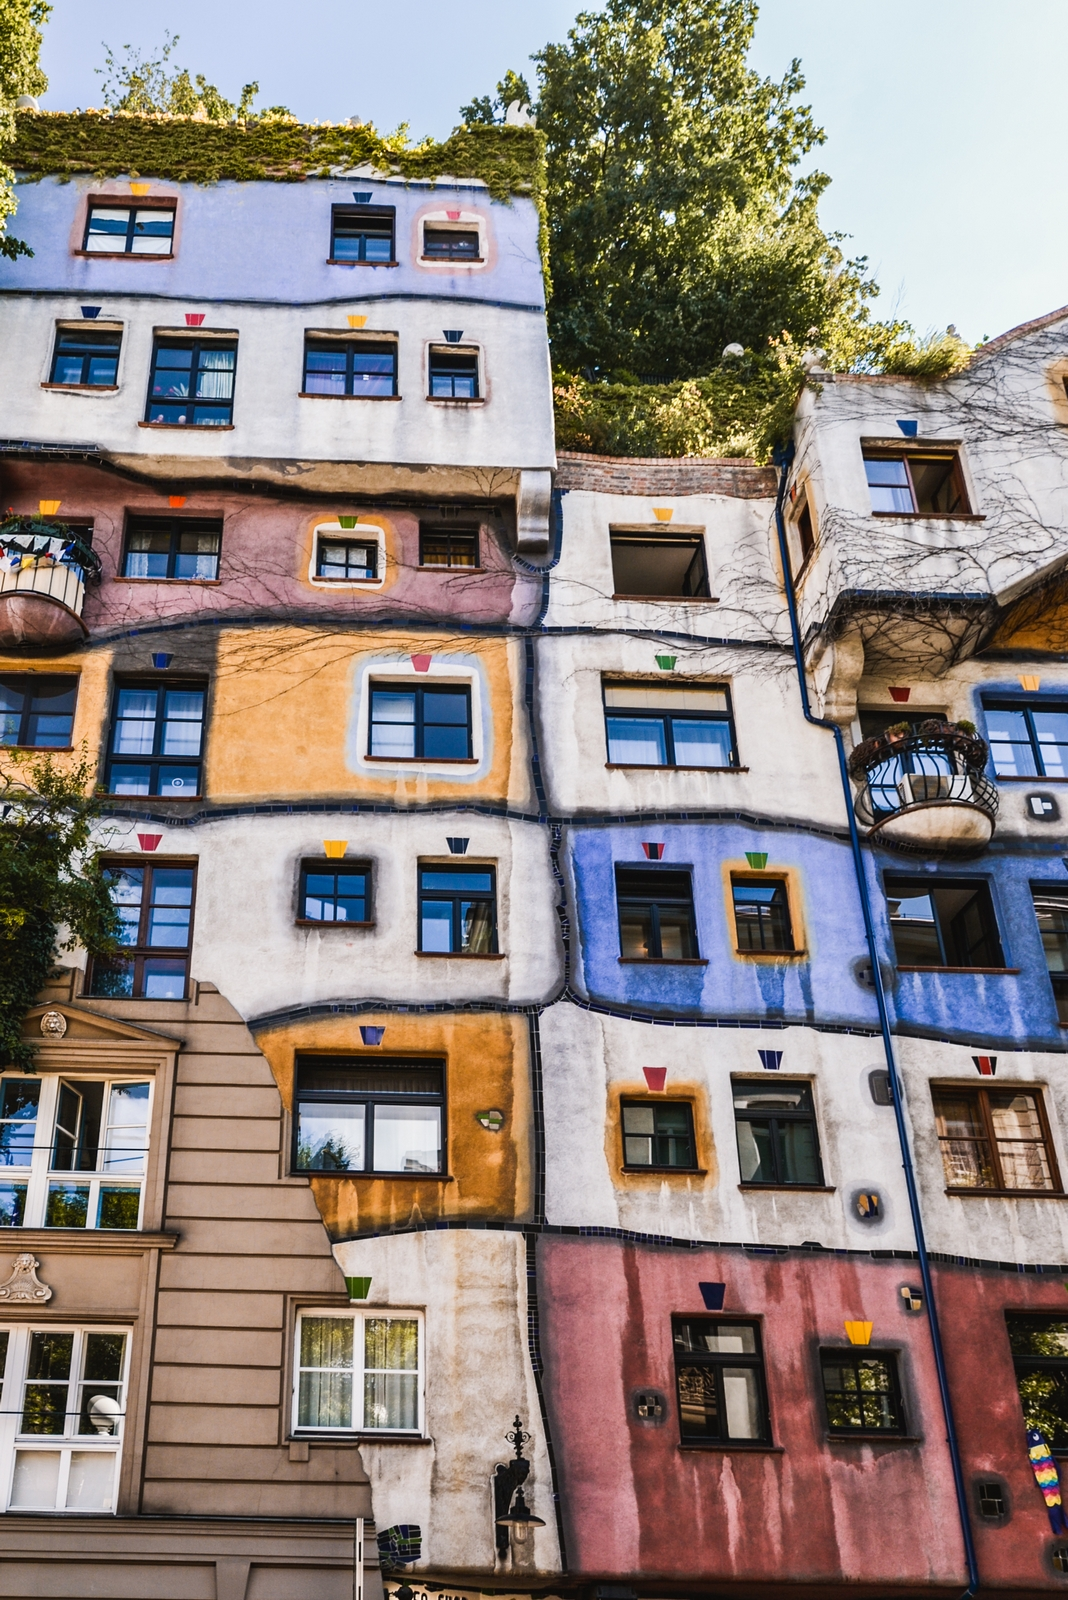 Hundertwasserhaus, one of the top 10 strangest buildings in Vienna - from travel blog: http:/Epepa.eu